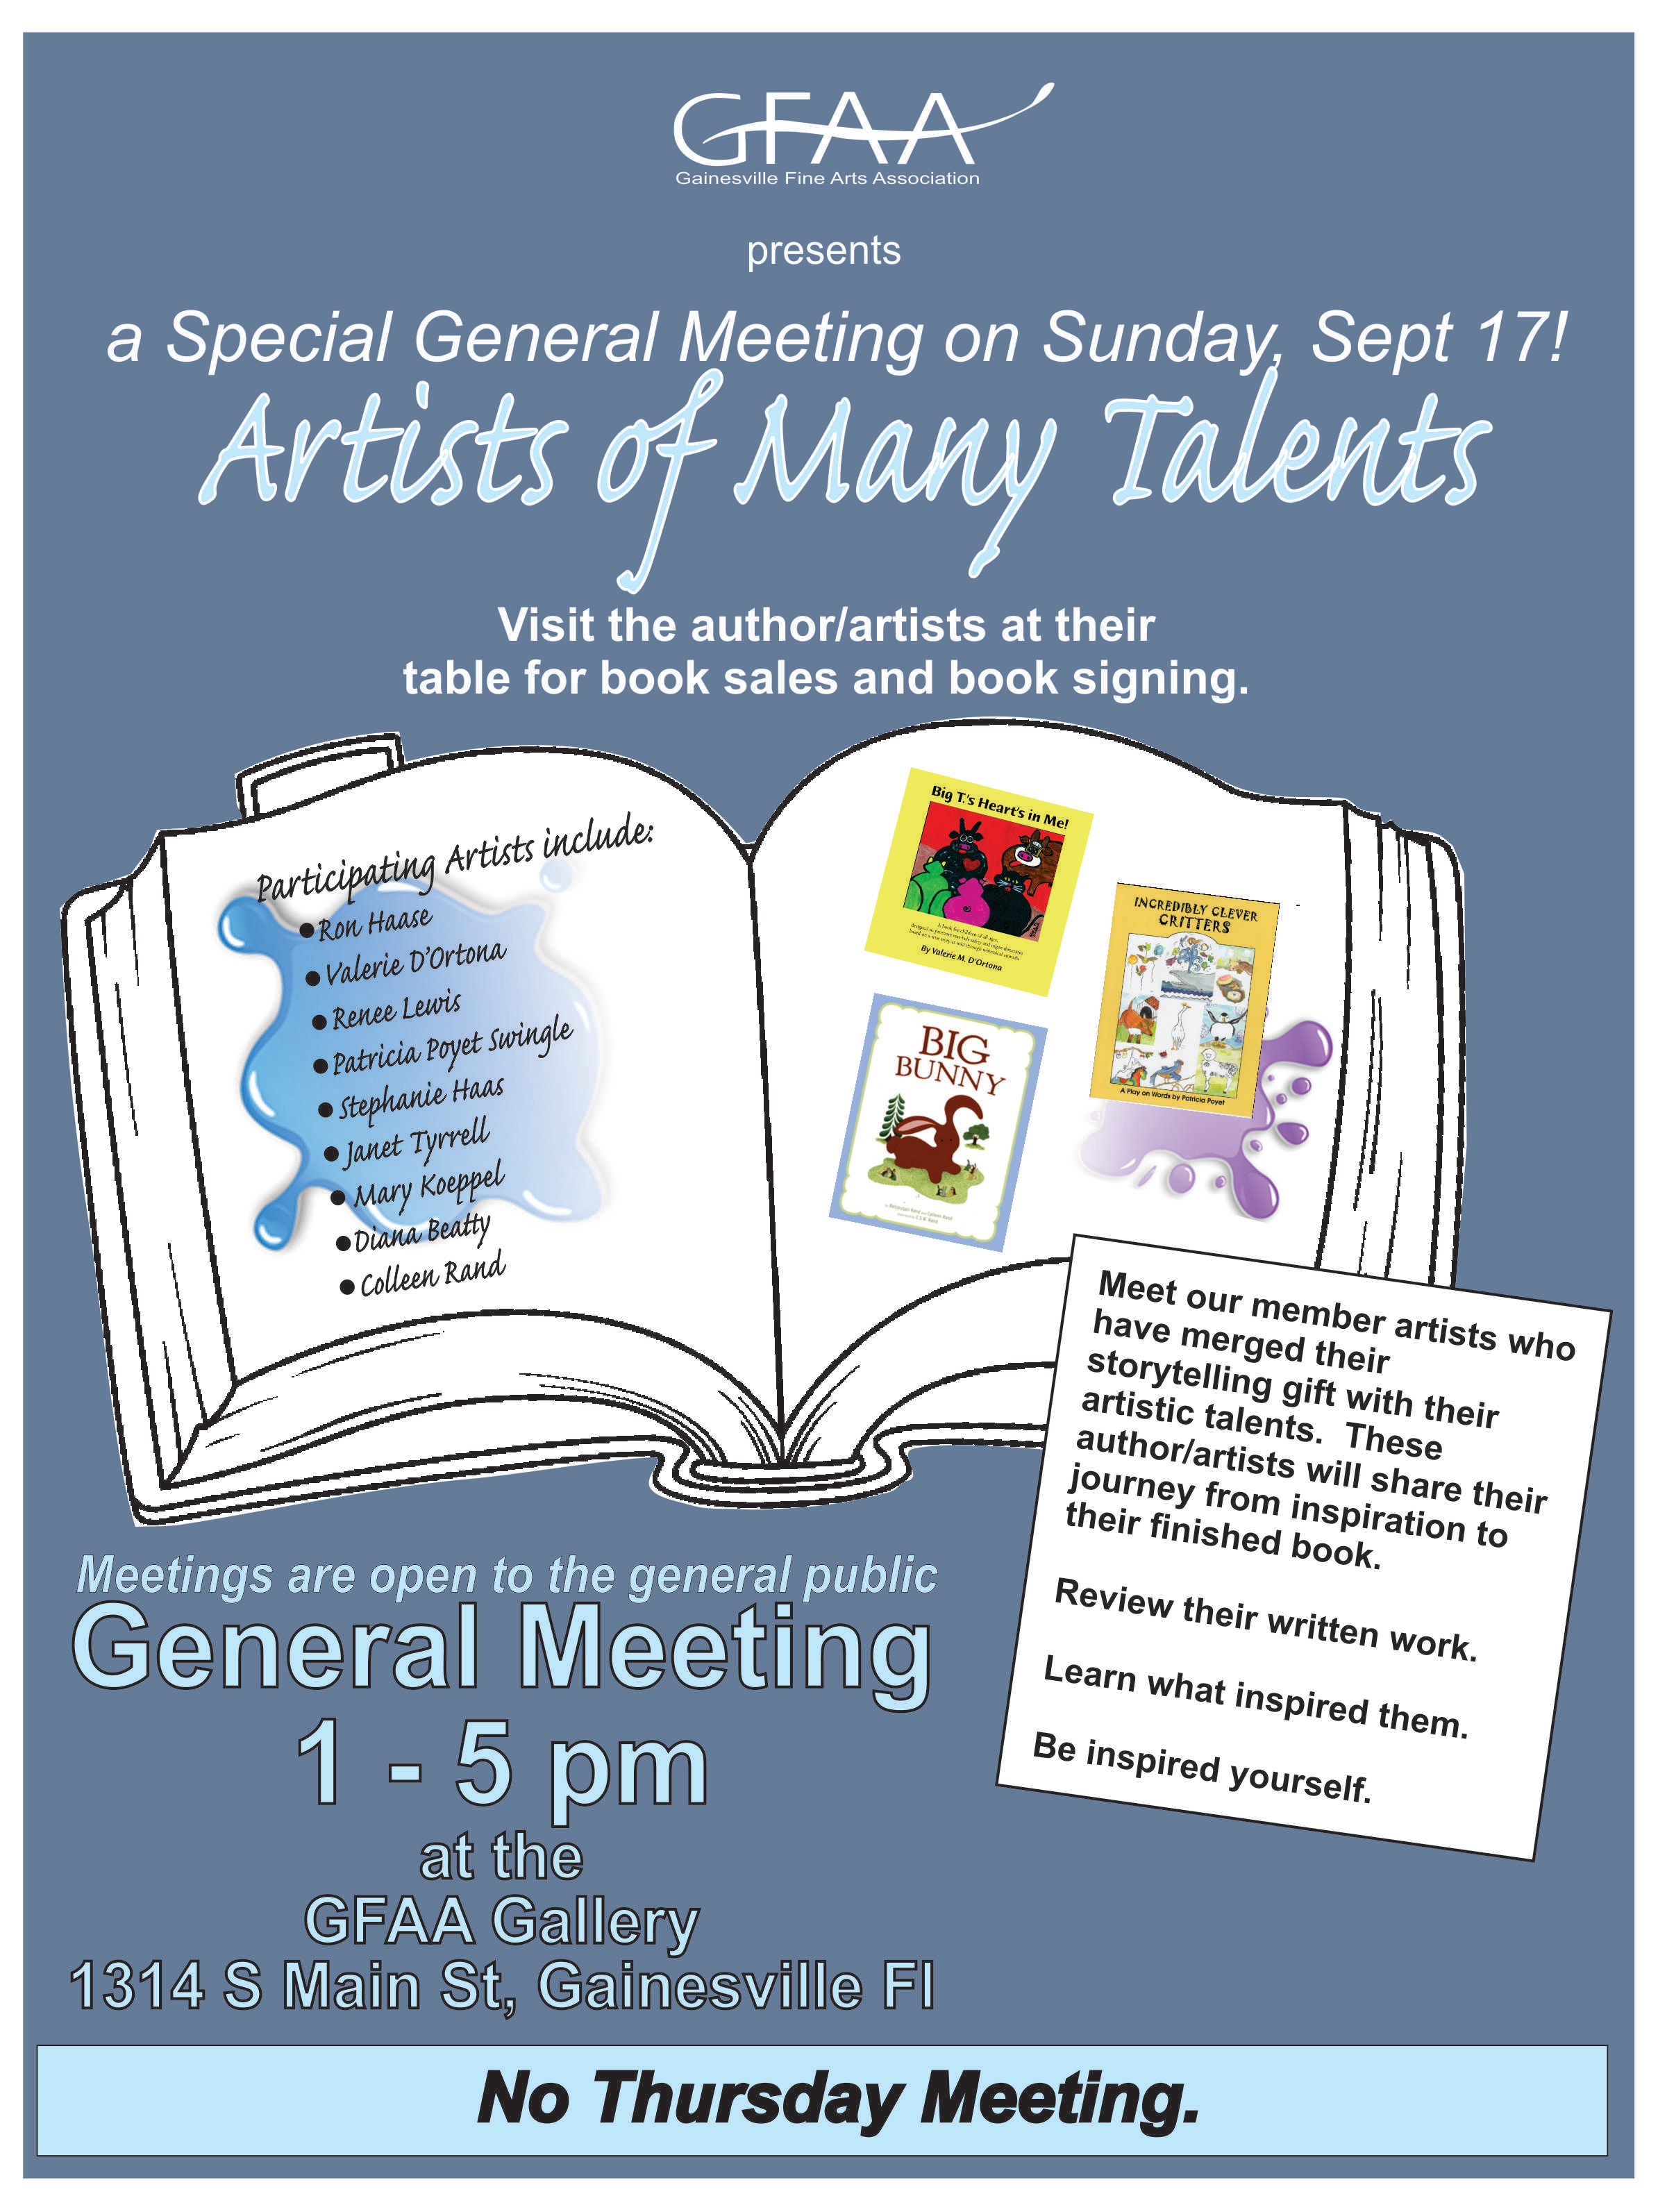 Art of Many Talents Meeting Sept 2017